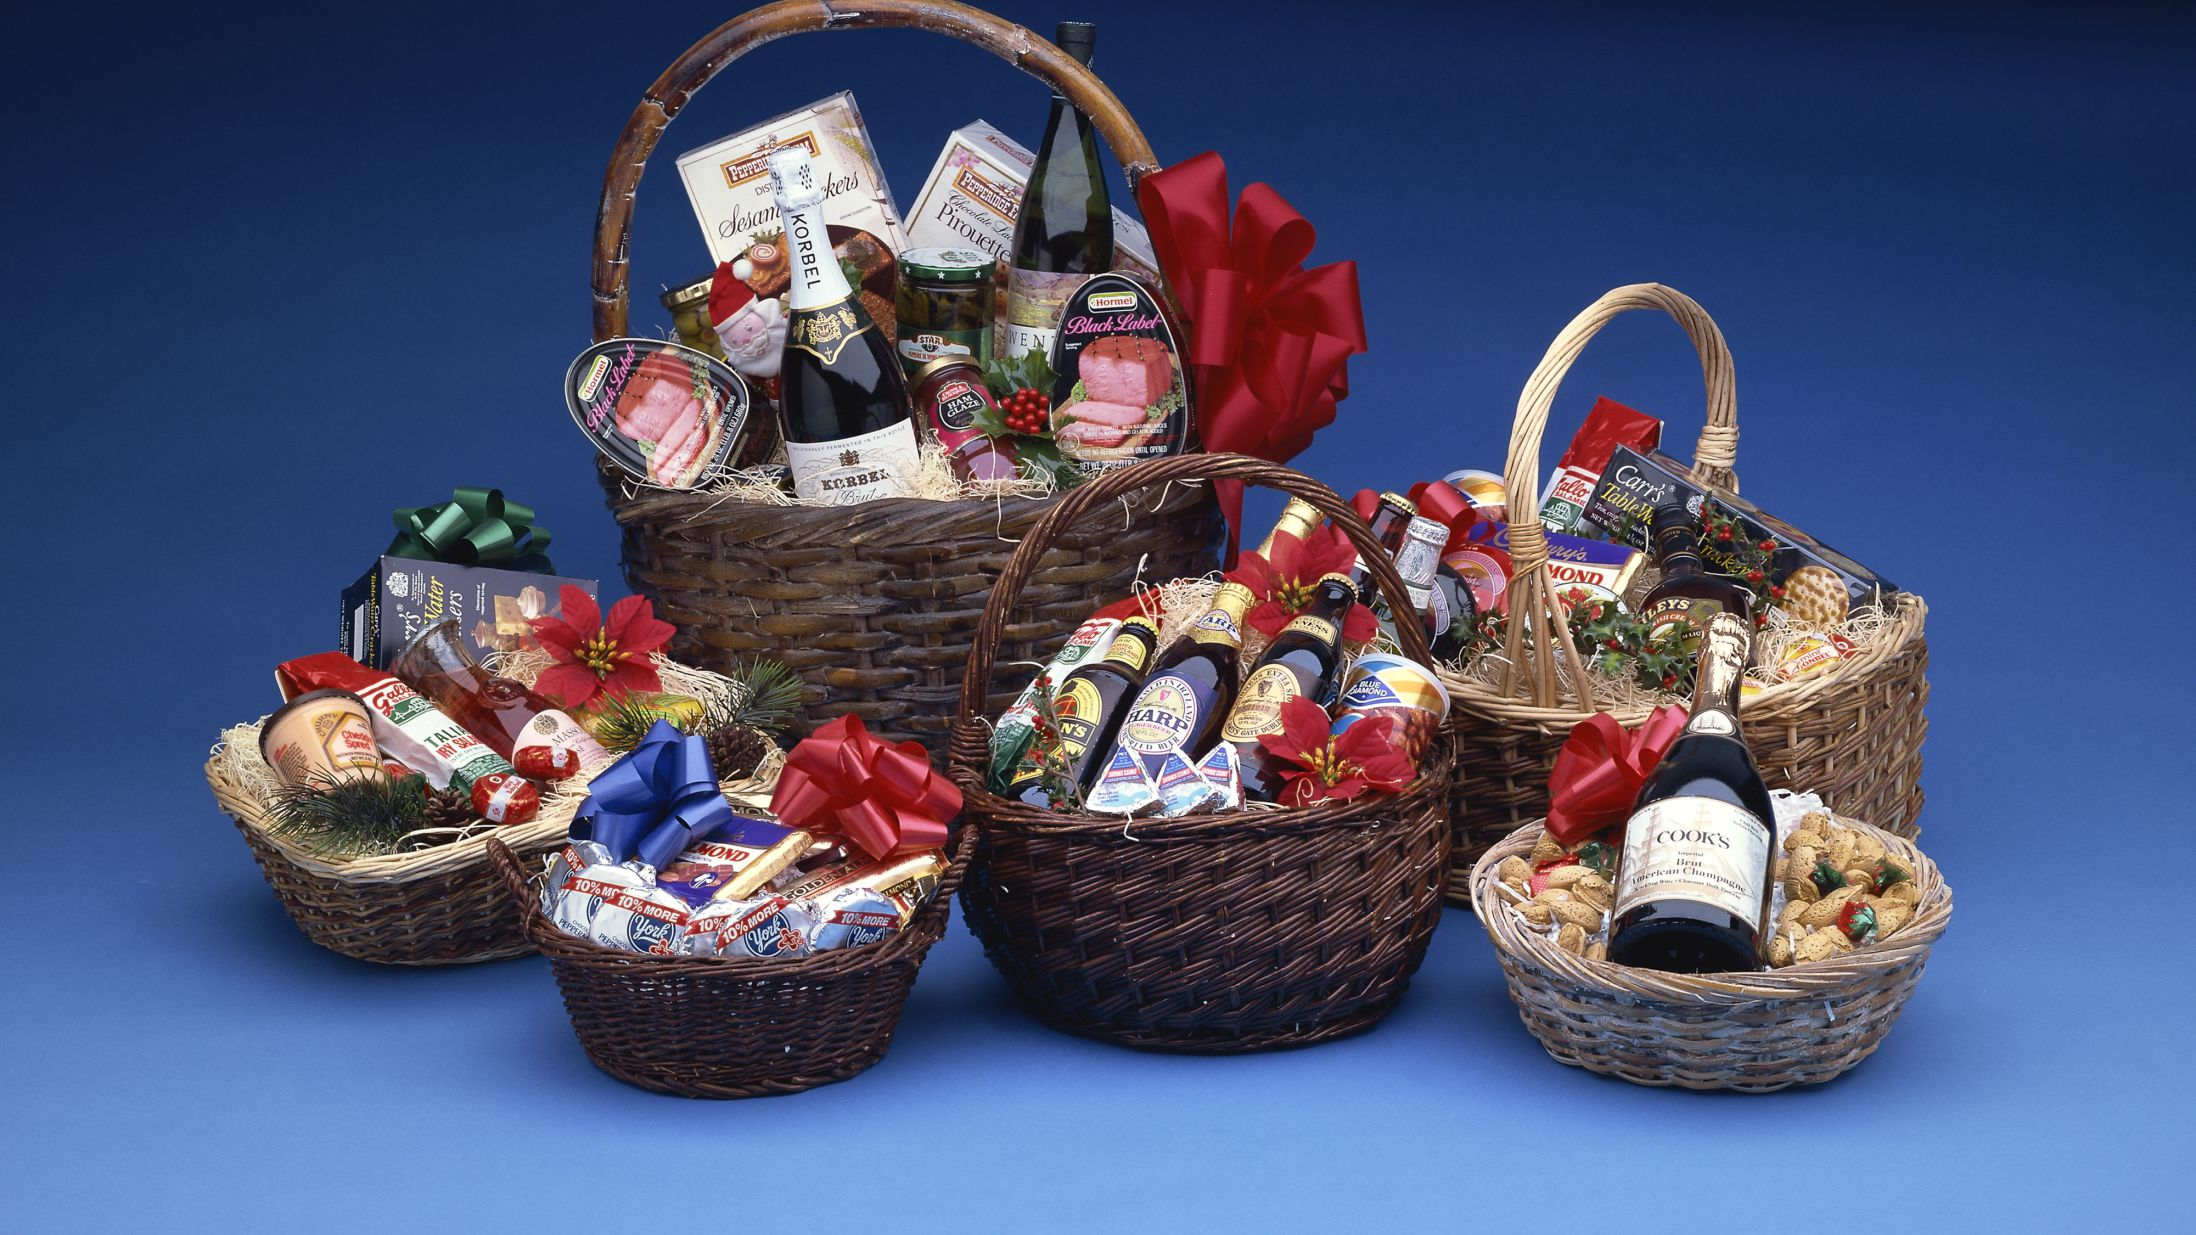 Food and Beverage Gift Basket Ideas